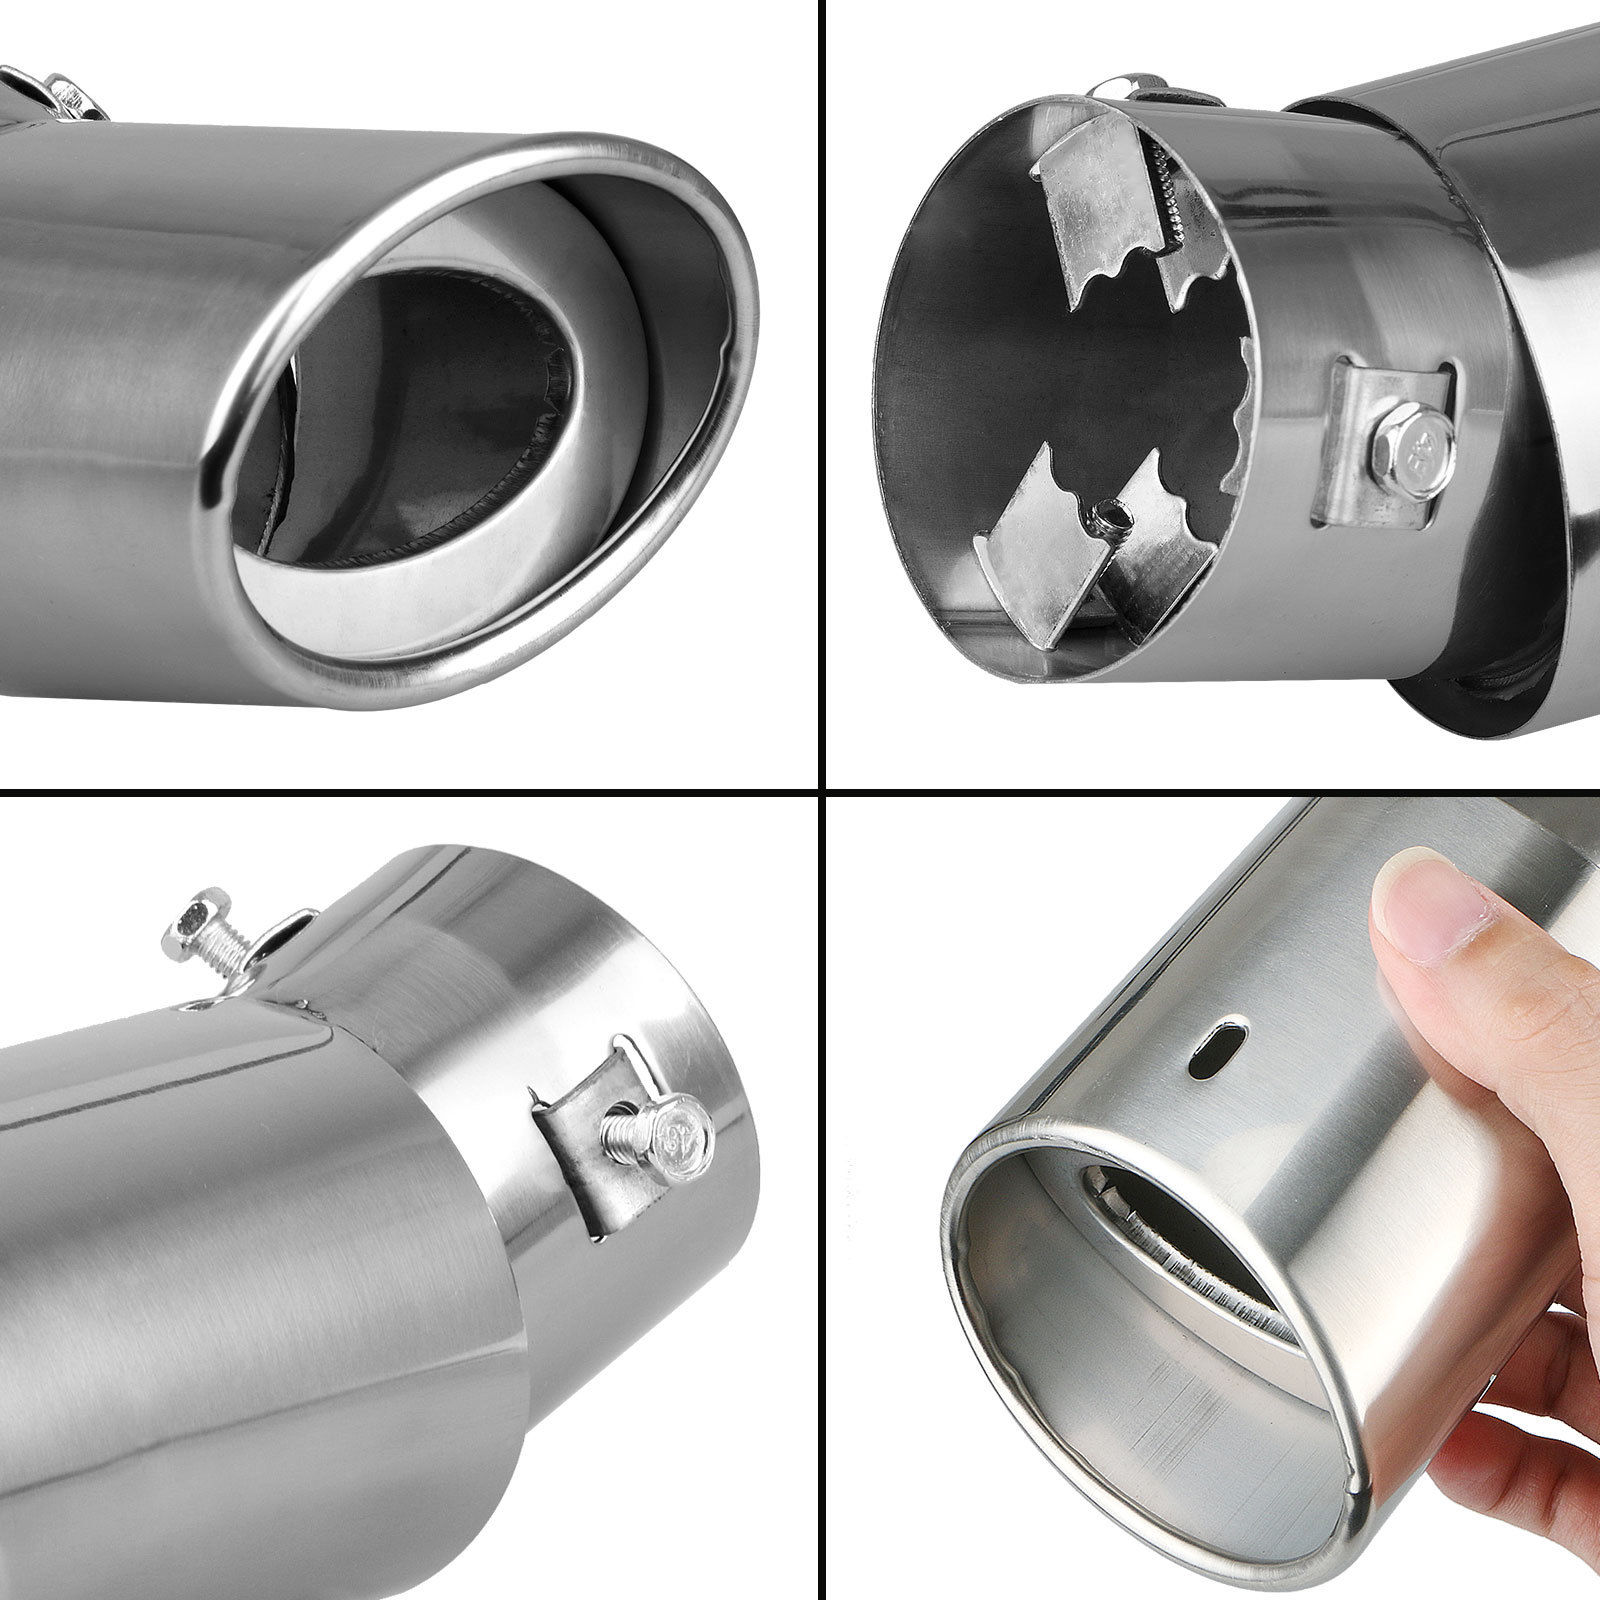 Universal Tail Muffler Tip Pipe Stainless Steel Chrome For RV Car Exhaust SUV